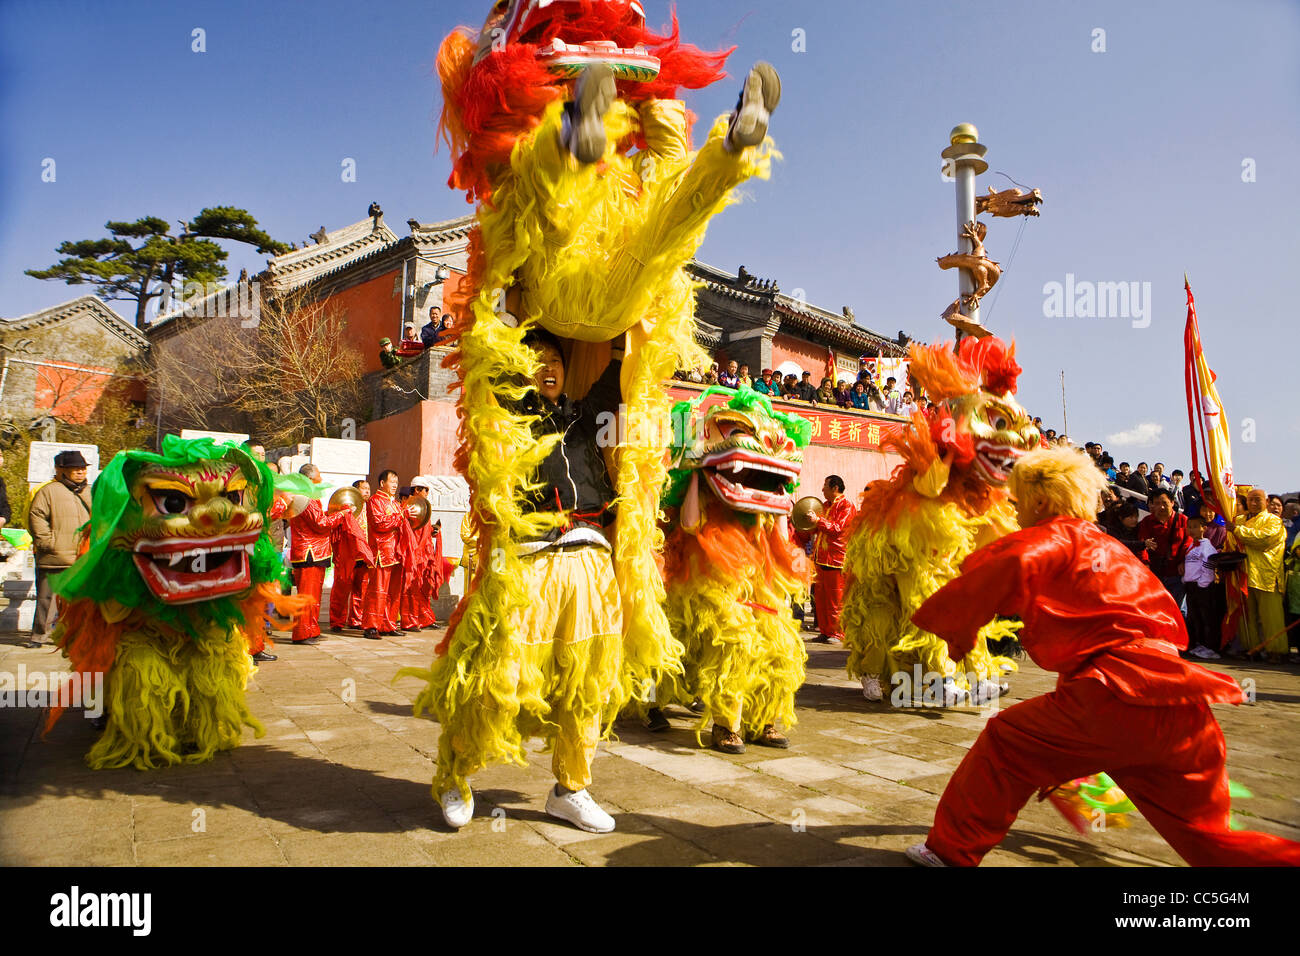 People performing lion dance during temple fair, Miaofeng Mountain, Beijing, China - Stock Image